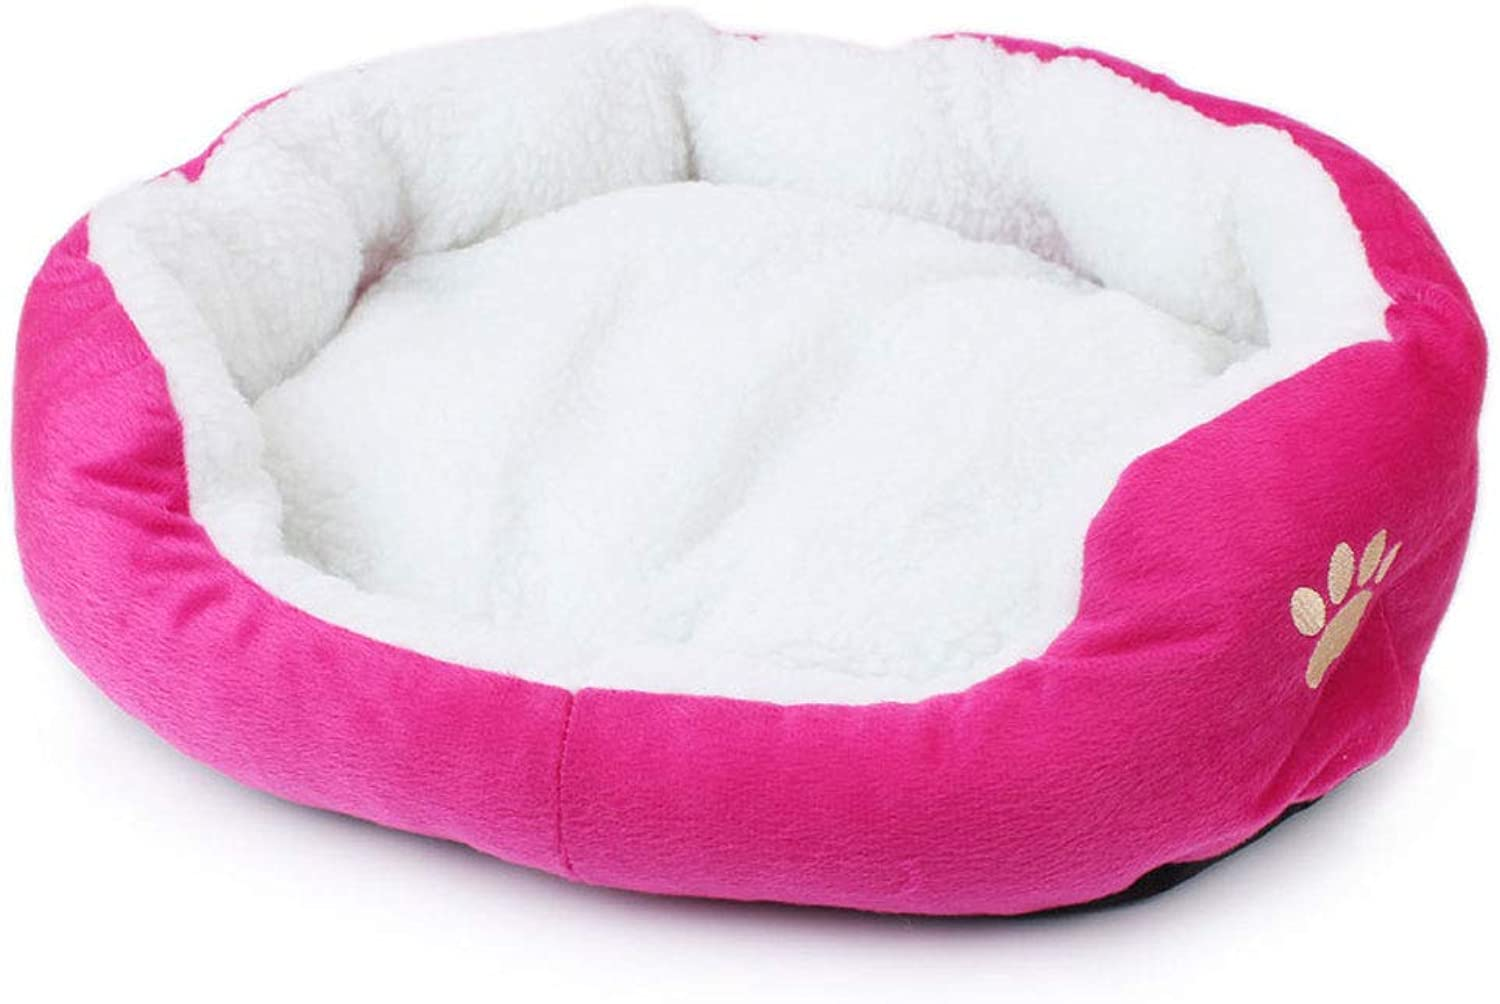 LJM Pet Dog Bed   SofaStyle Couch Pet Bed for Dogs & Cats Styles (color   Purple)